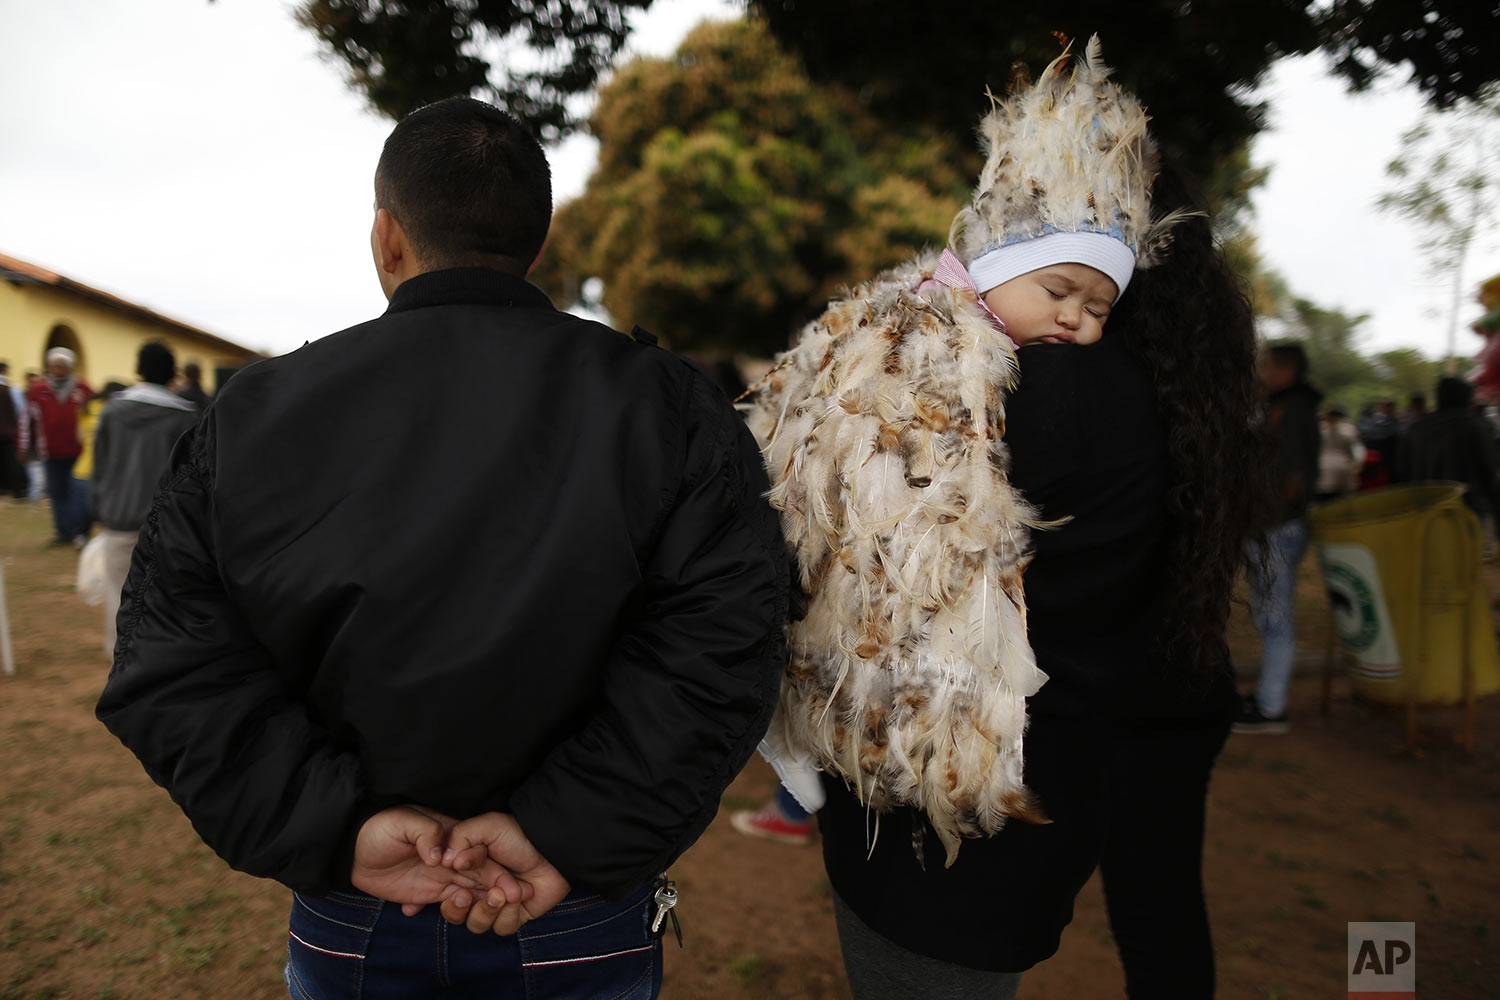 Jesus Cardozo Servin sleeps on his mother's shoulder dressed in a feathered costume during a Mass in honor of St. Francis Solano in Emboscada, Paraguay, Wednesday, July 24, 2019. The 9-month-old, who was born premature, was brought to the service by his parents as a devotee to express their gratitude to St. Francis Solano. (AP Photo/Jorge Saenz)